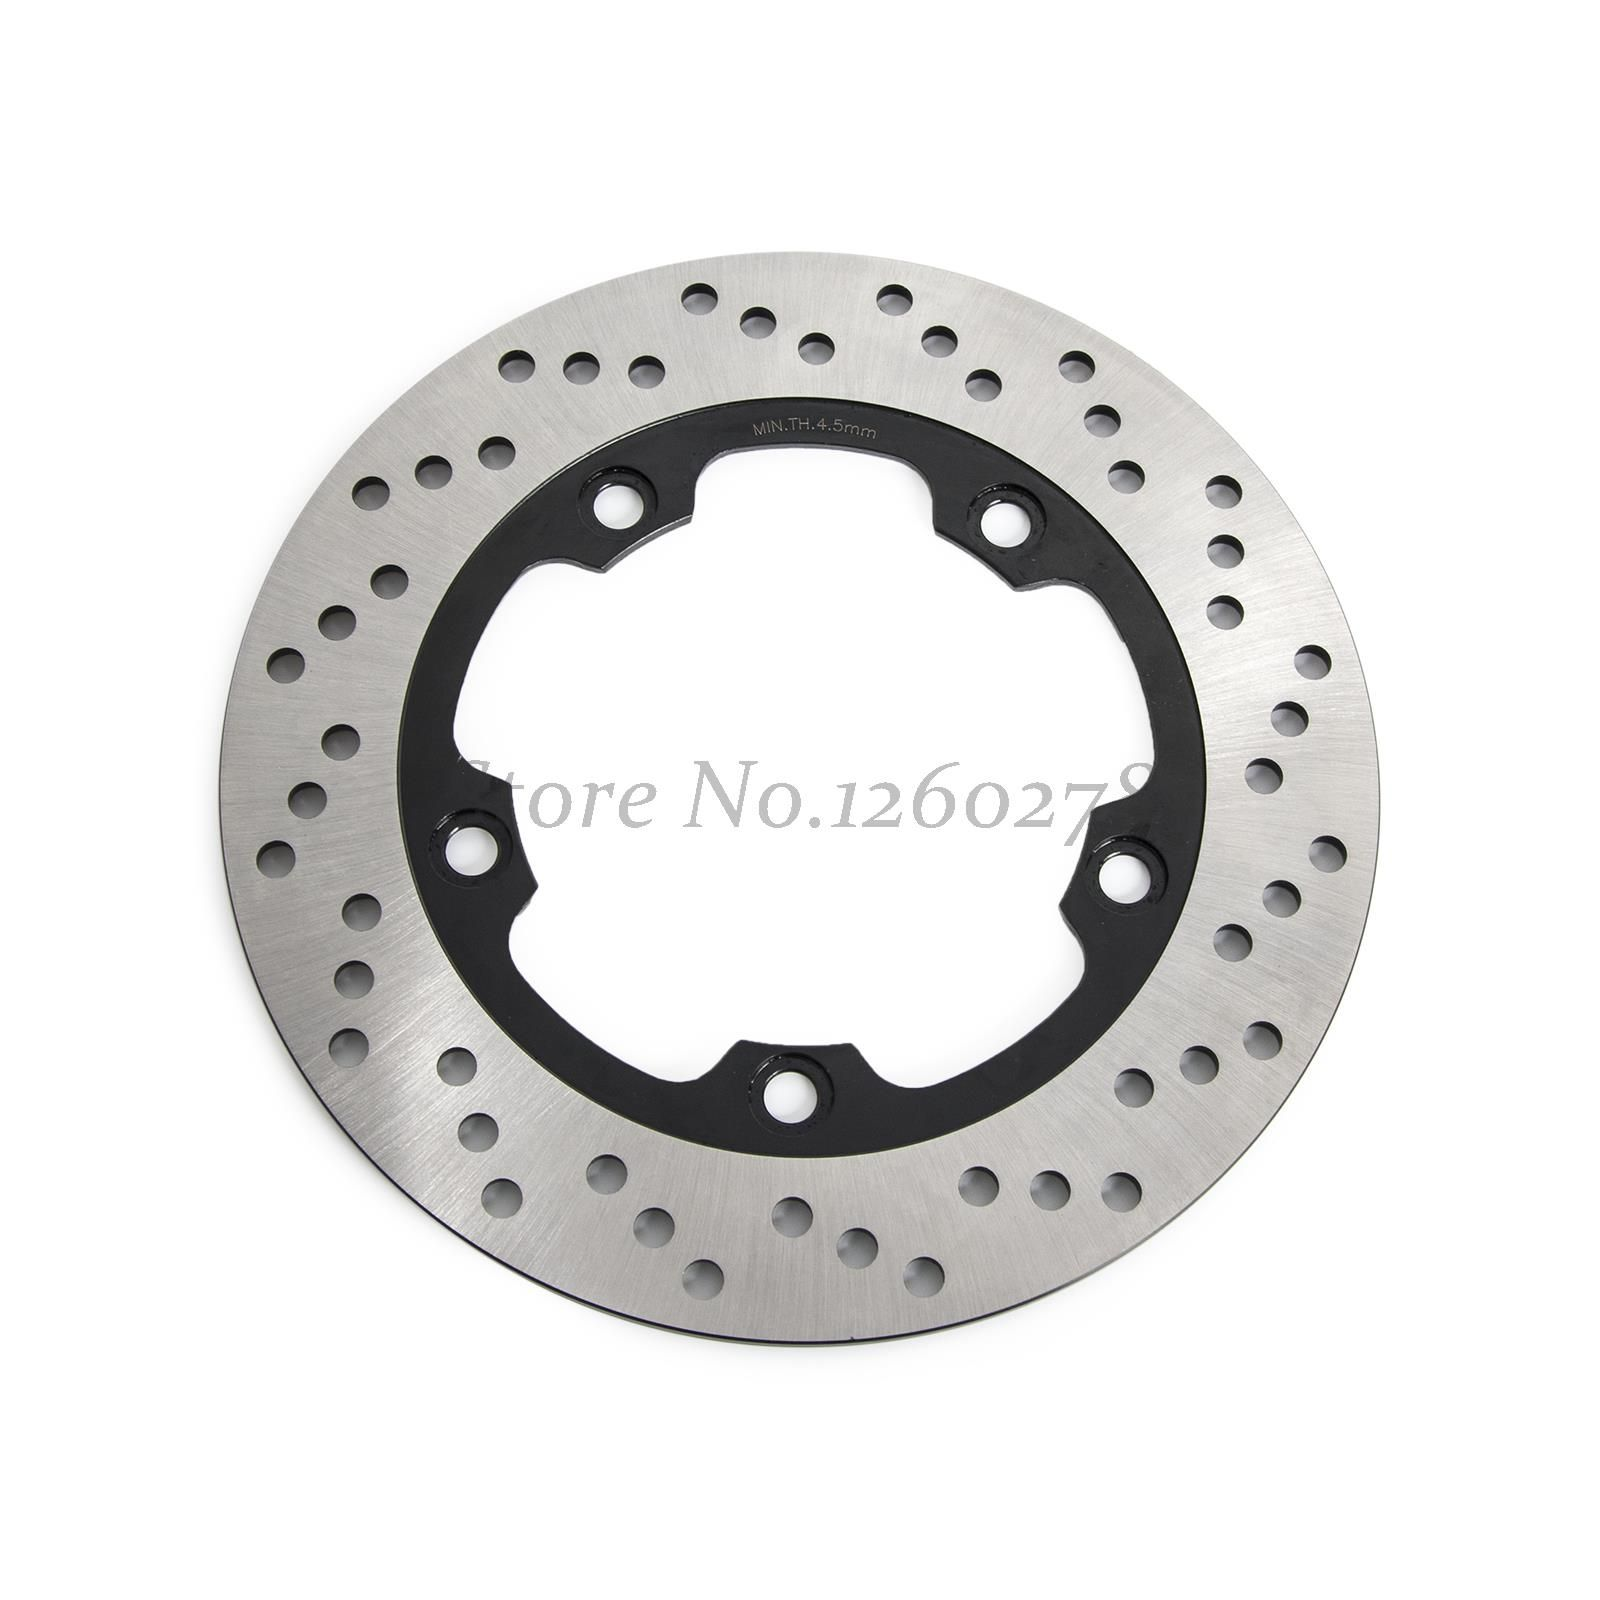 New Motorcycle Rear Rotor Brake Disc For Suzuki Bandit 1200 1250 GSF 650 750 GSR 600 GSX 650 Inazuma 250Z (GW250) 2012-2016